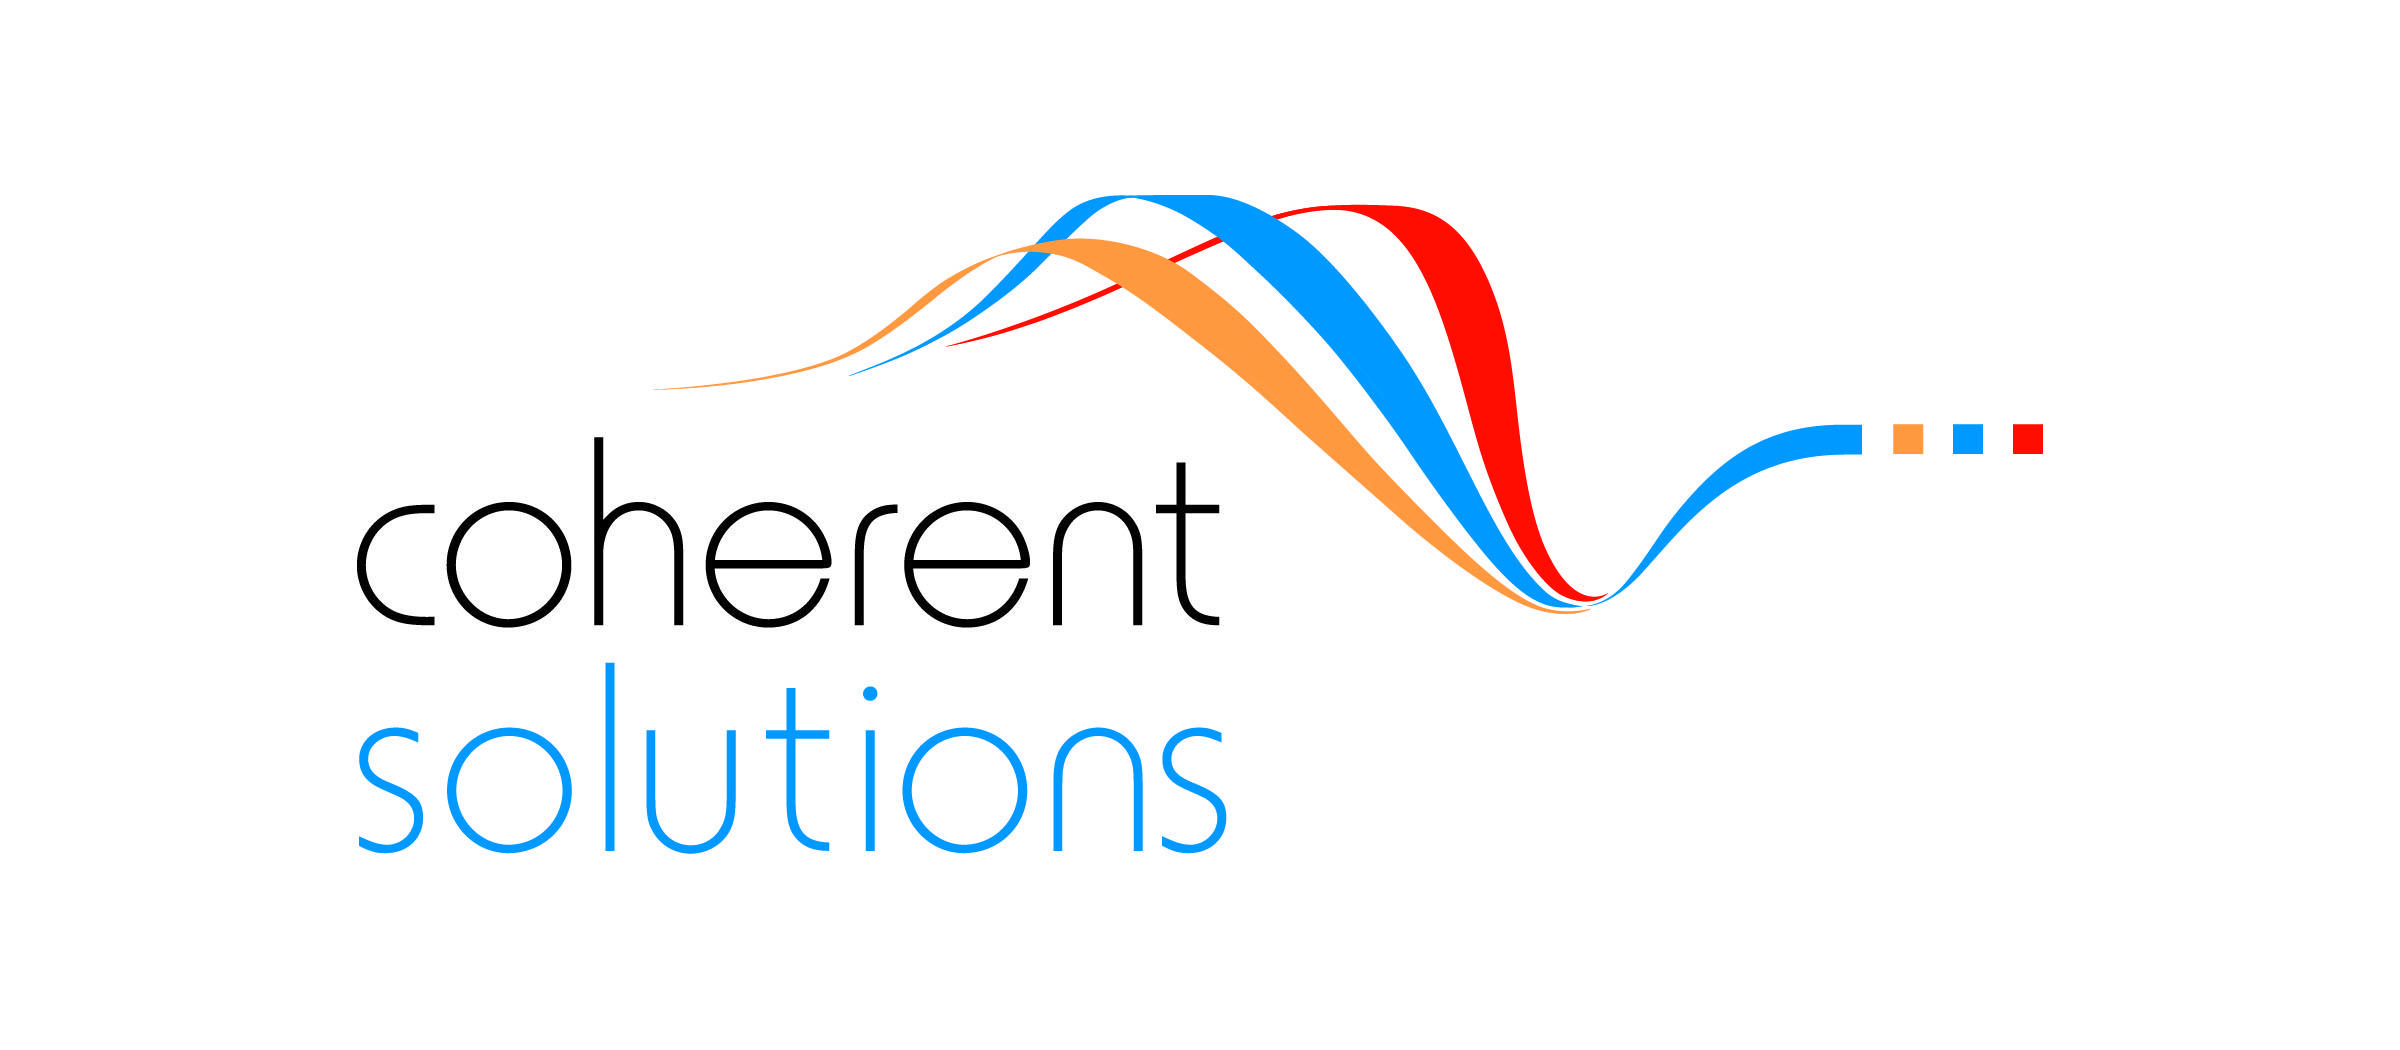 Coherent Solutions company logo